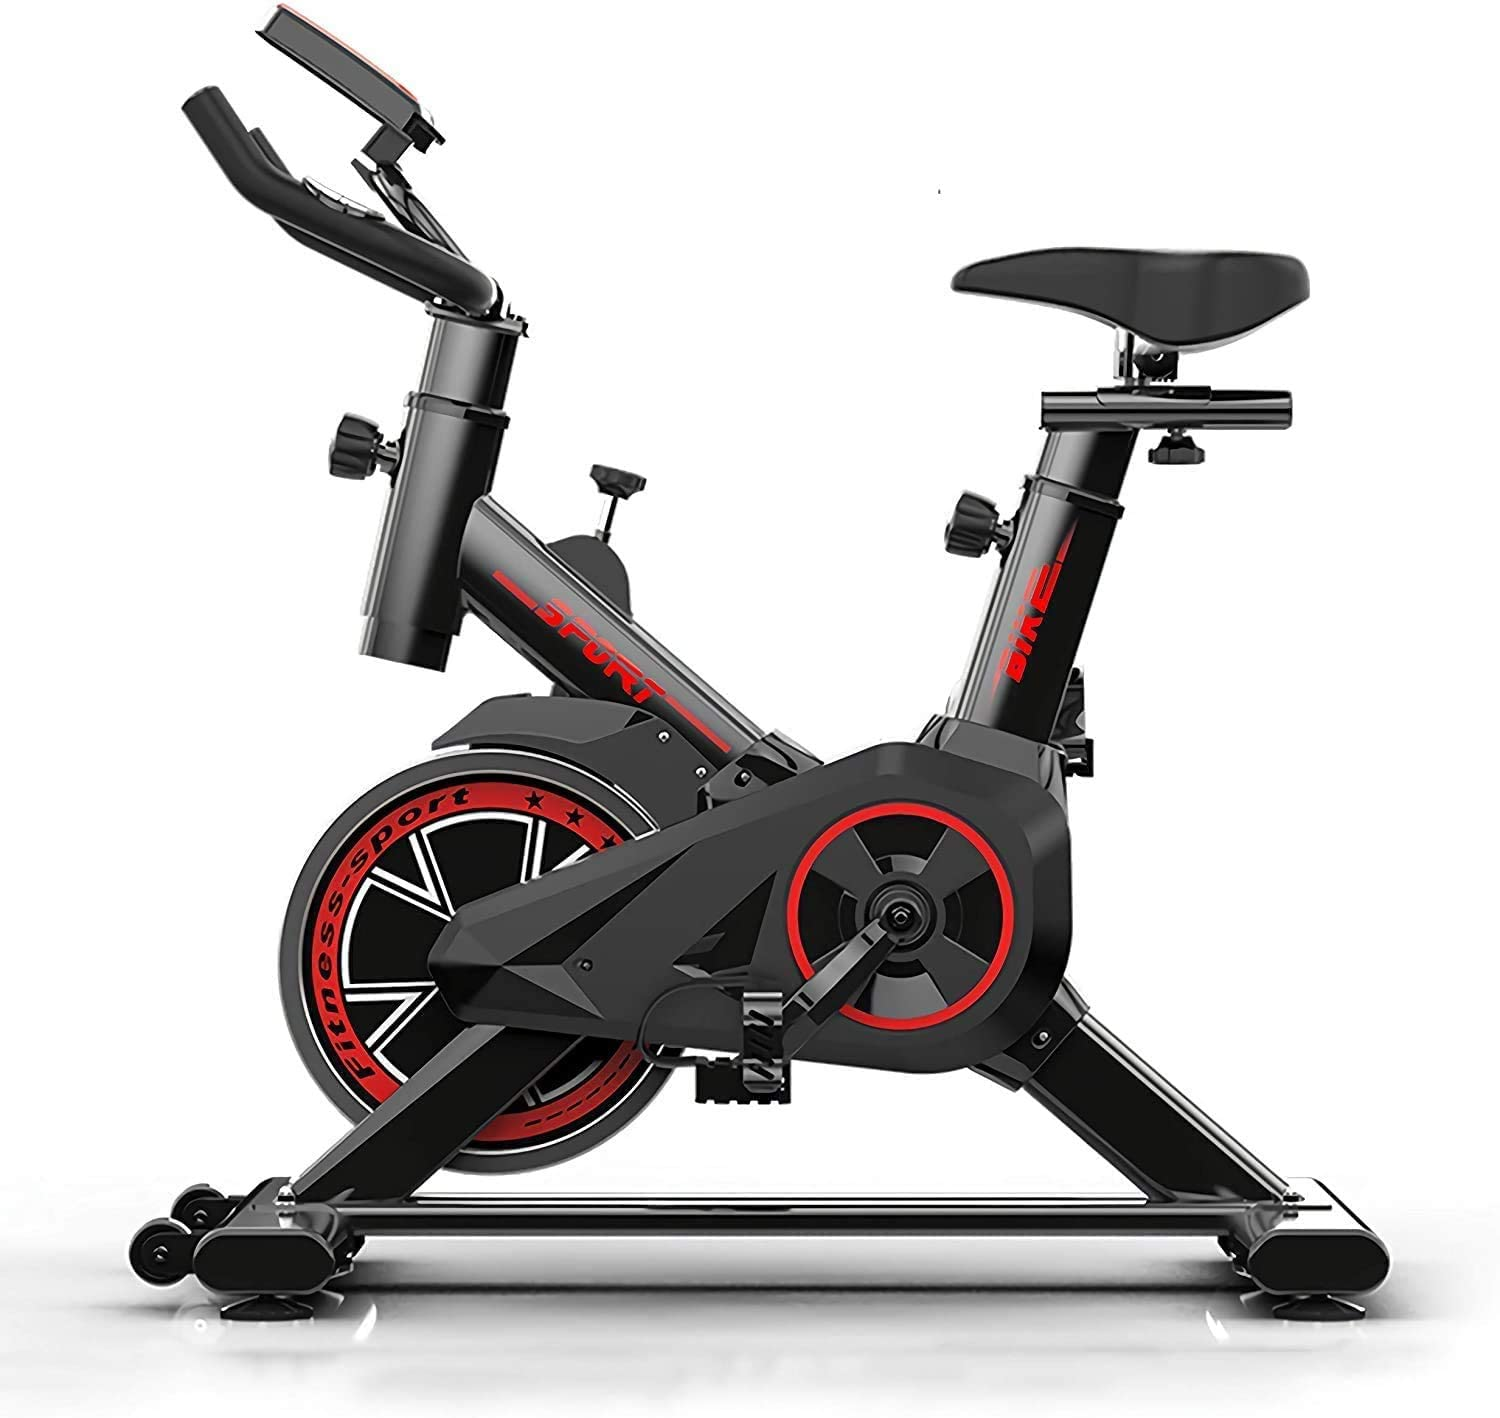 Bicycle Exerciser Indoor Cycling Bikes High Quality Stationary Bicycle Home Fitness Bike Weight Loss Spinning Bike